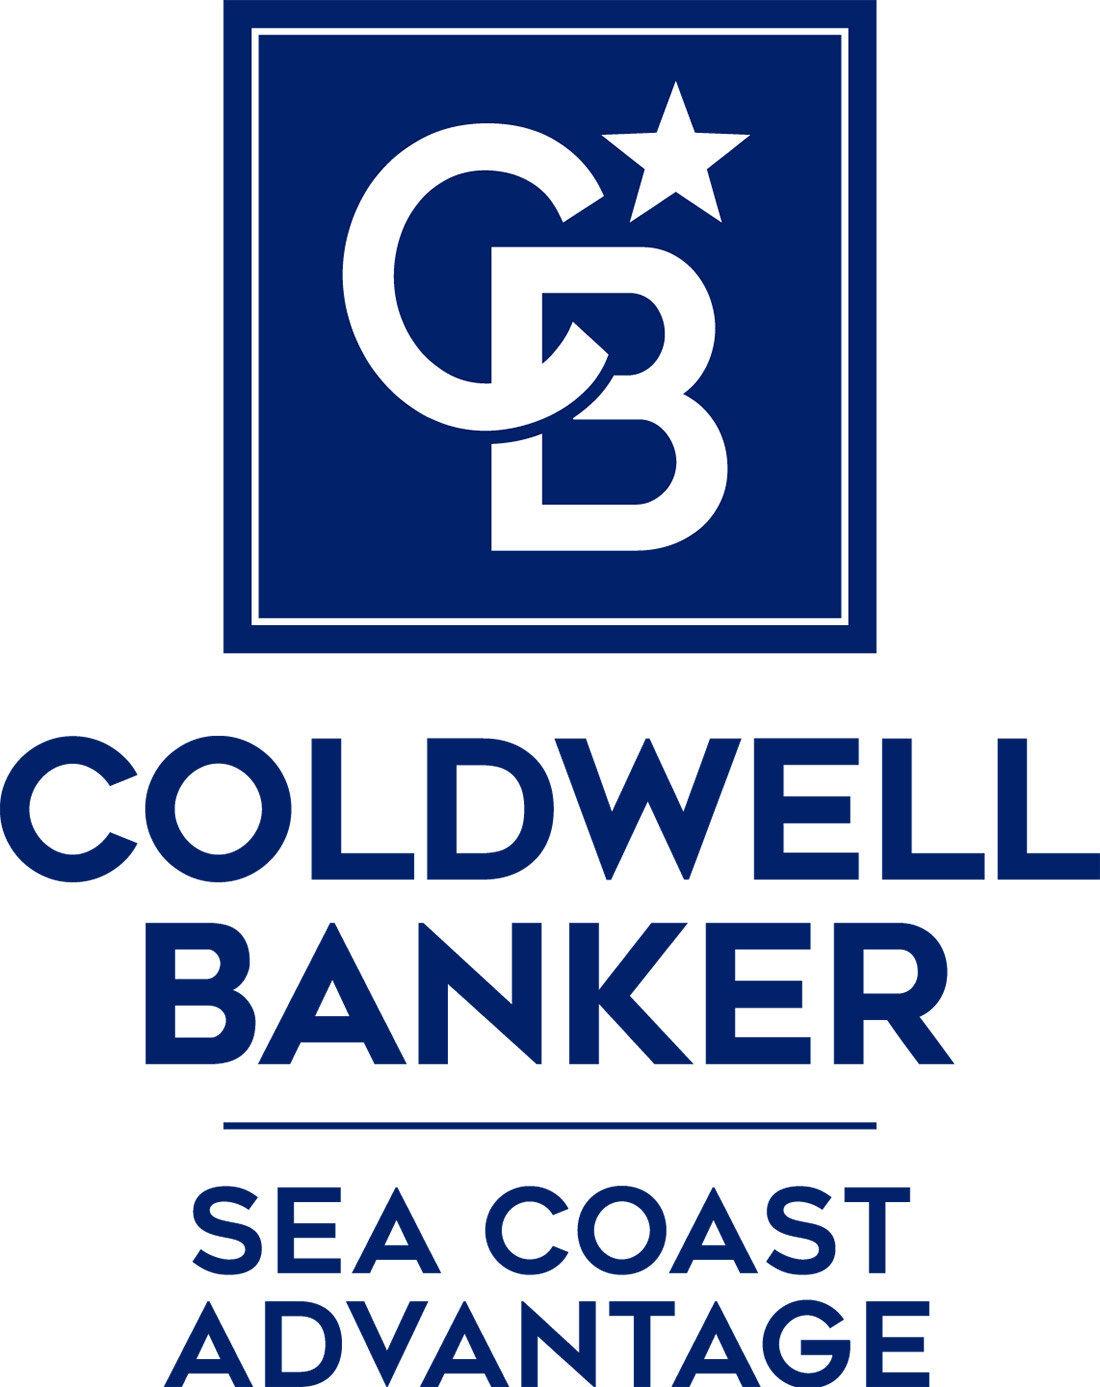 Steve Wells - Coldwell Banker Sea Coast Advantage Realty Logo